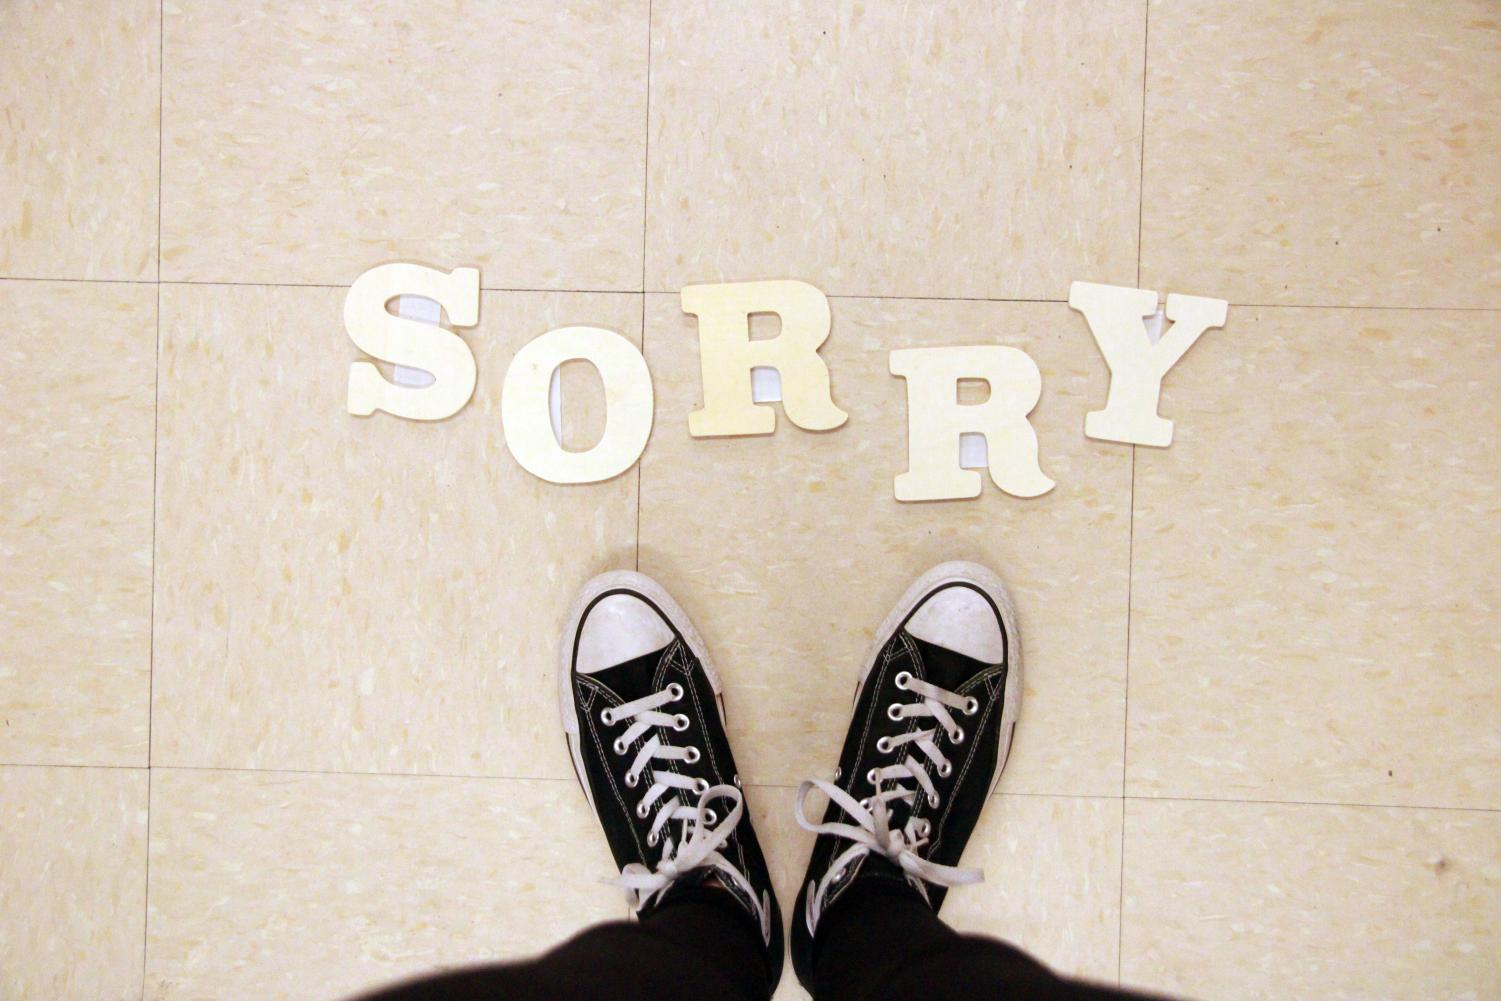 Many people have become so accustomed to apologizing for the smallest things; it's become a reflex.